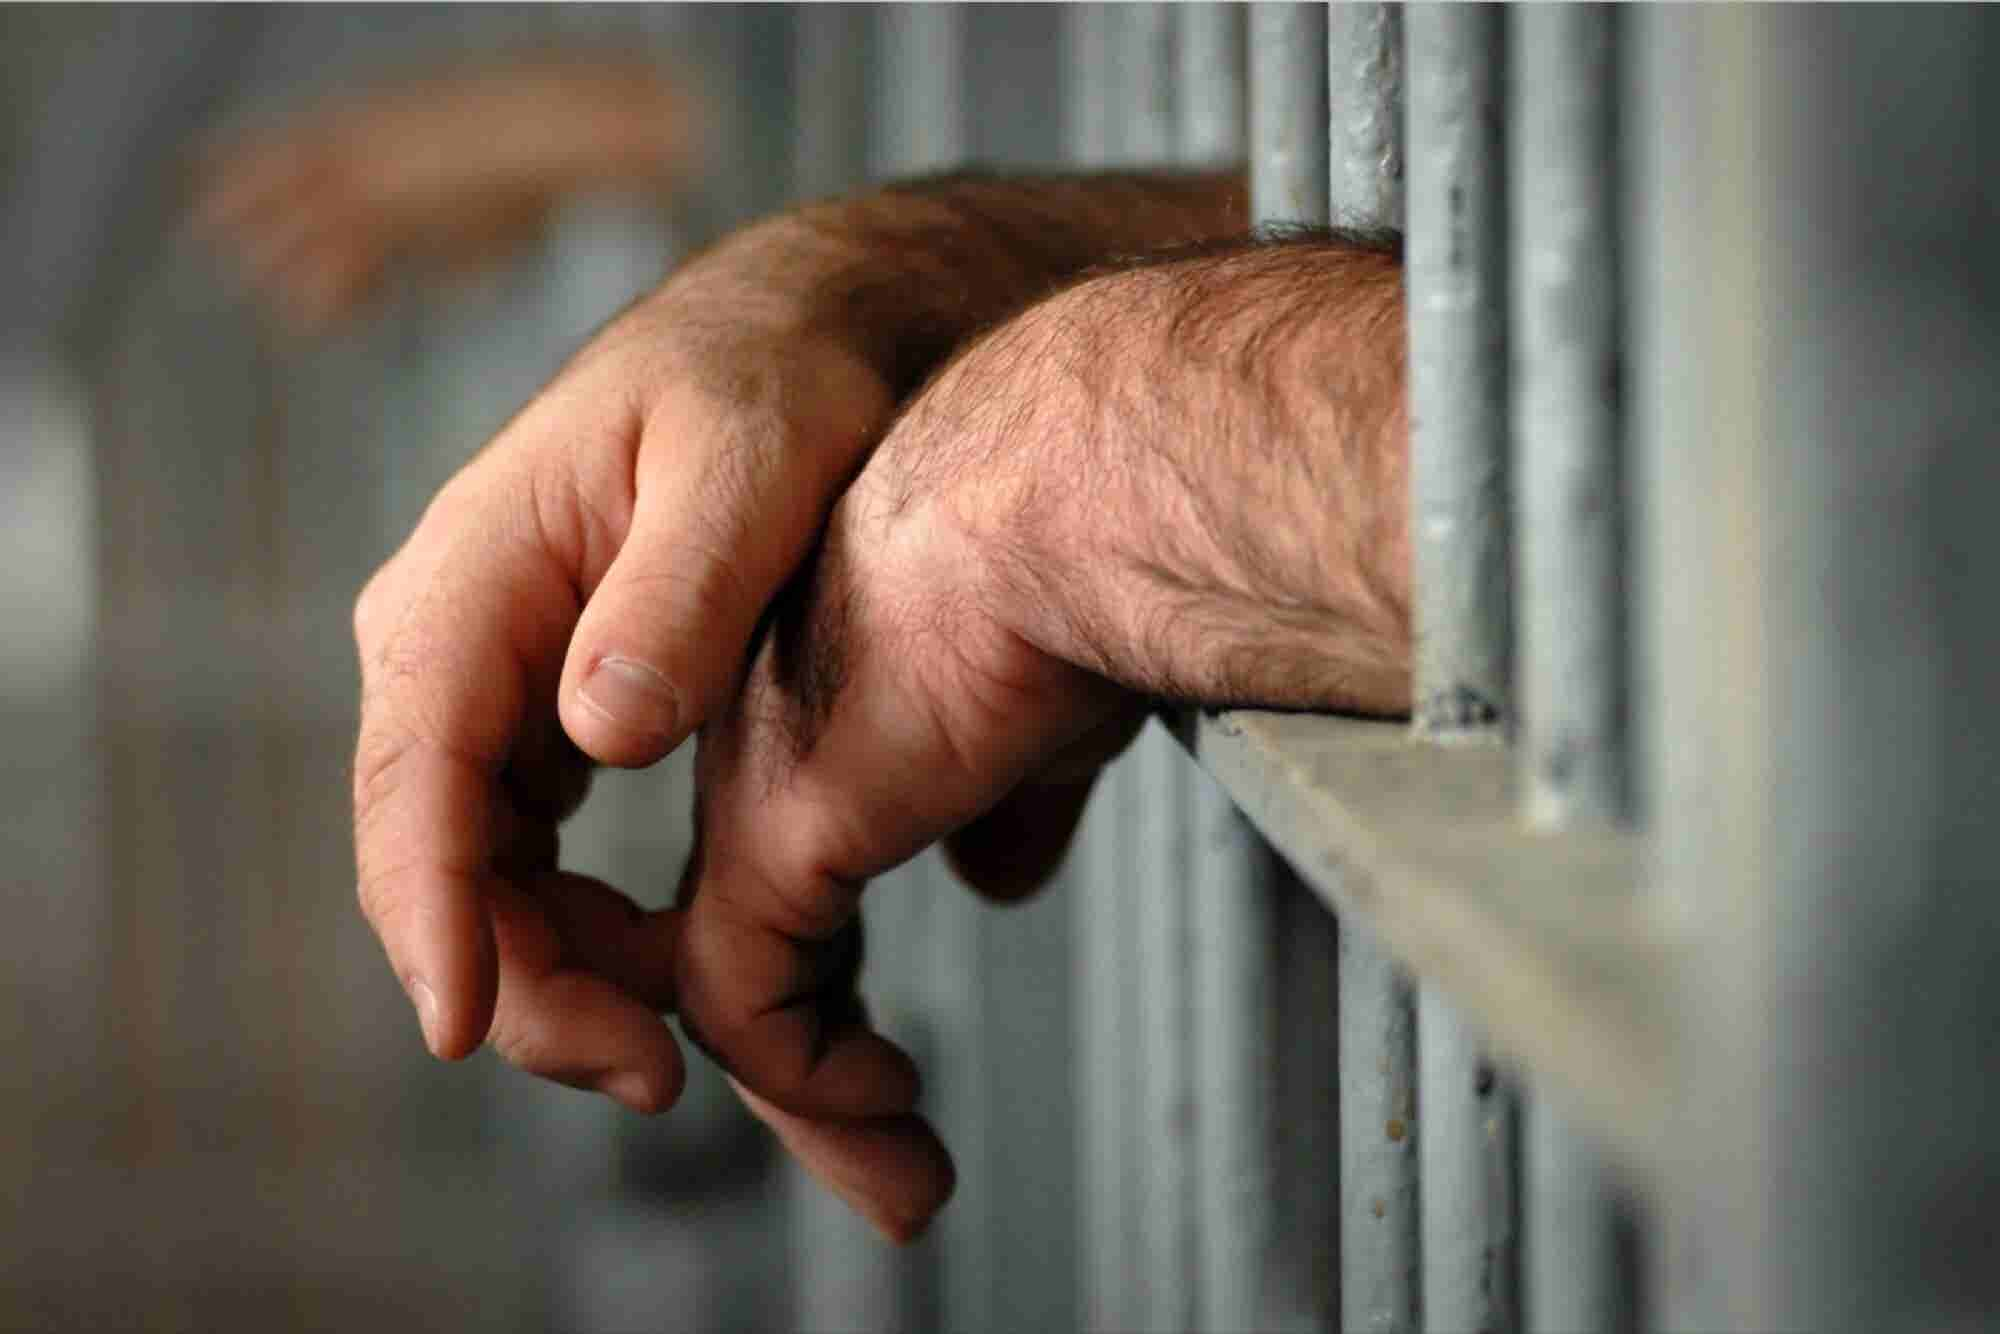 5 Harsh Lessons Learned in Prison That Made Me a Better Entrepreneur